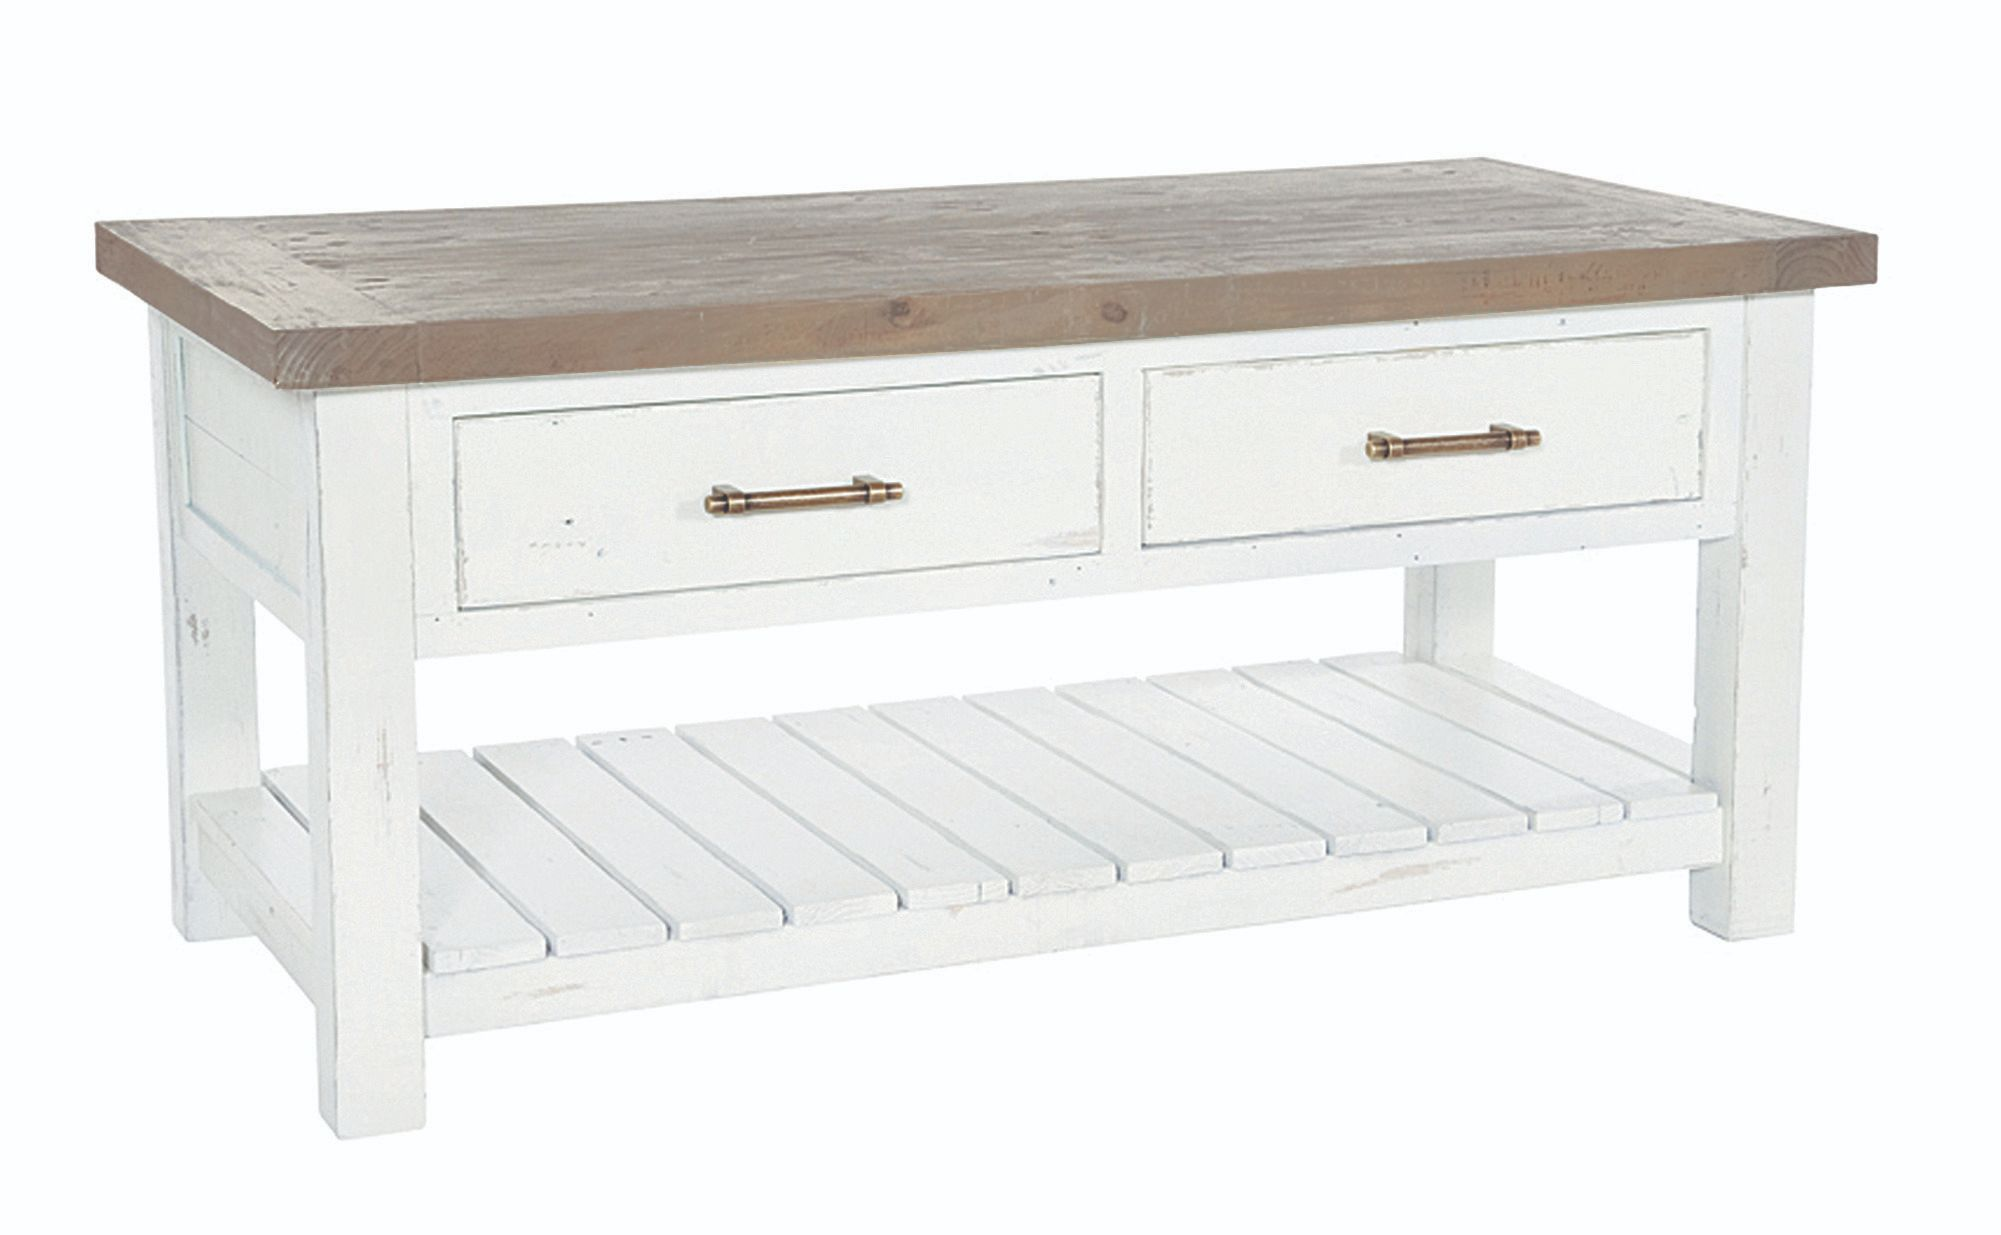 PURBECK COFFEE TABLE Distressed Paint & Driftwood